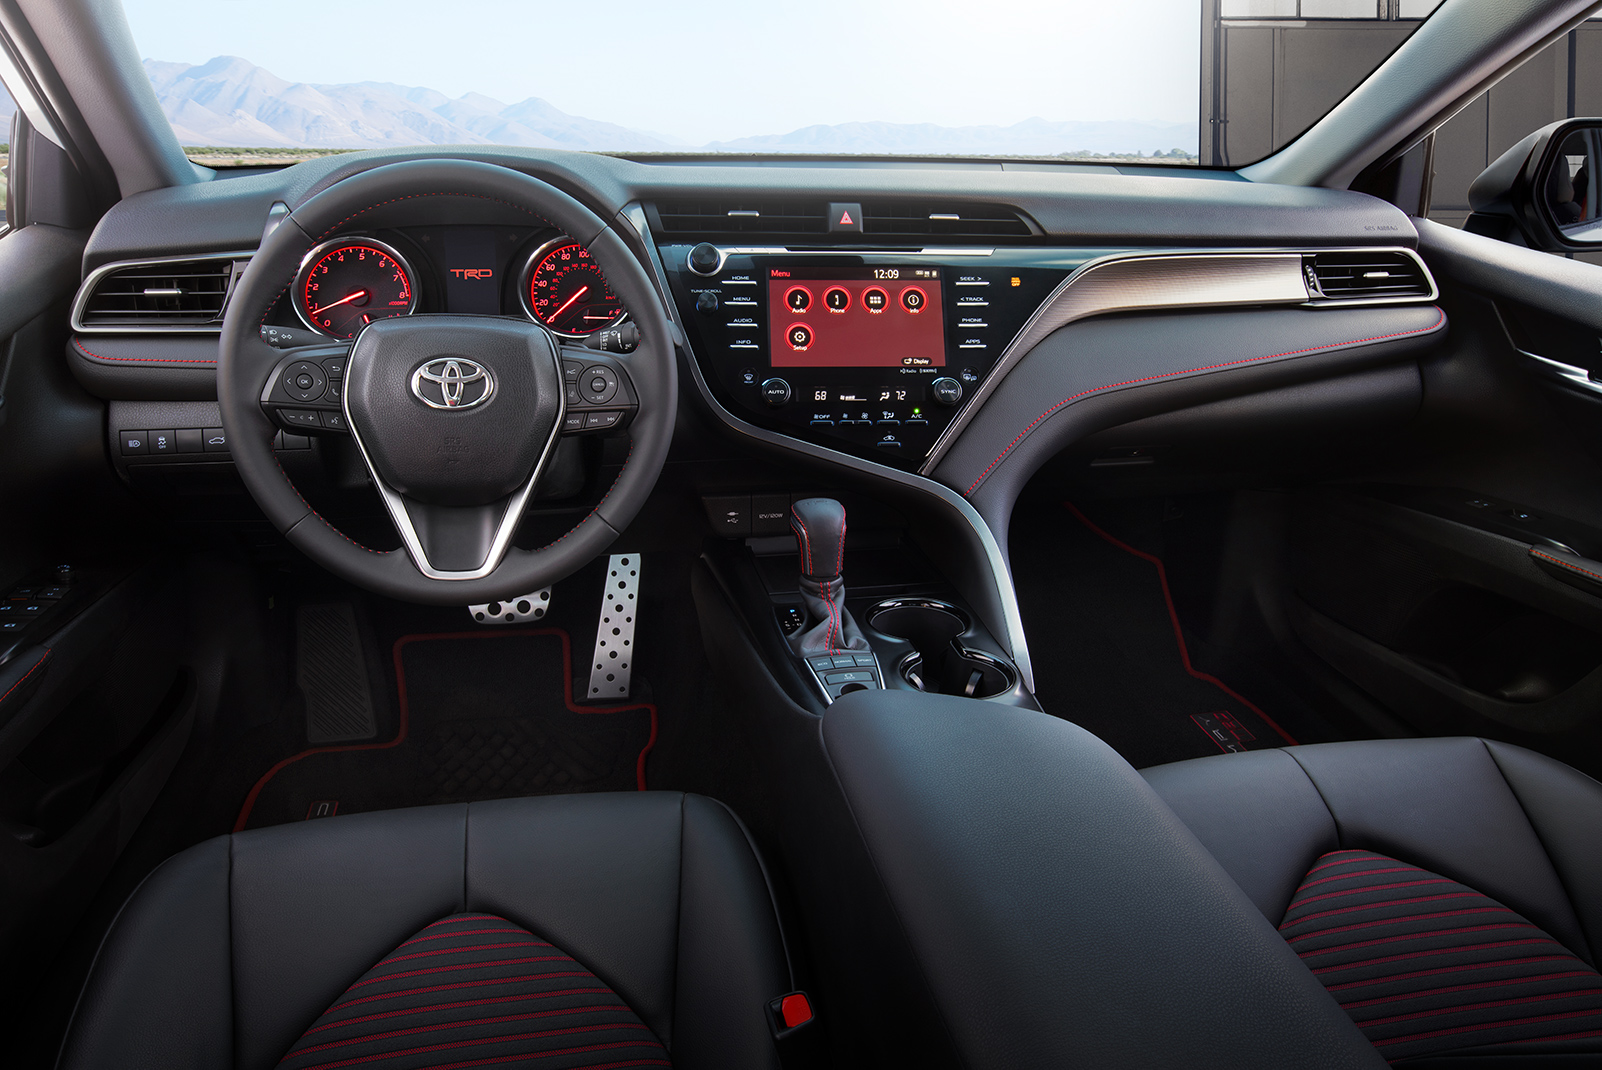 Model Features of the 2020 Toyota Camry at Tri County Toyota | The dashboard of the 2020 Camry TRD